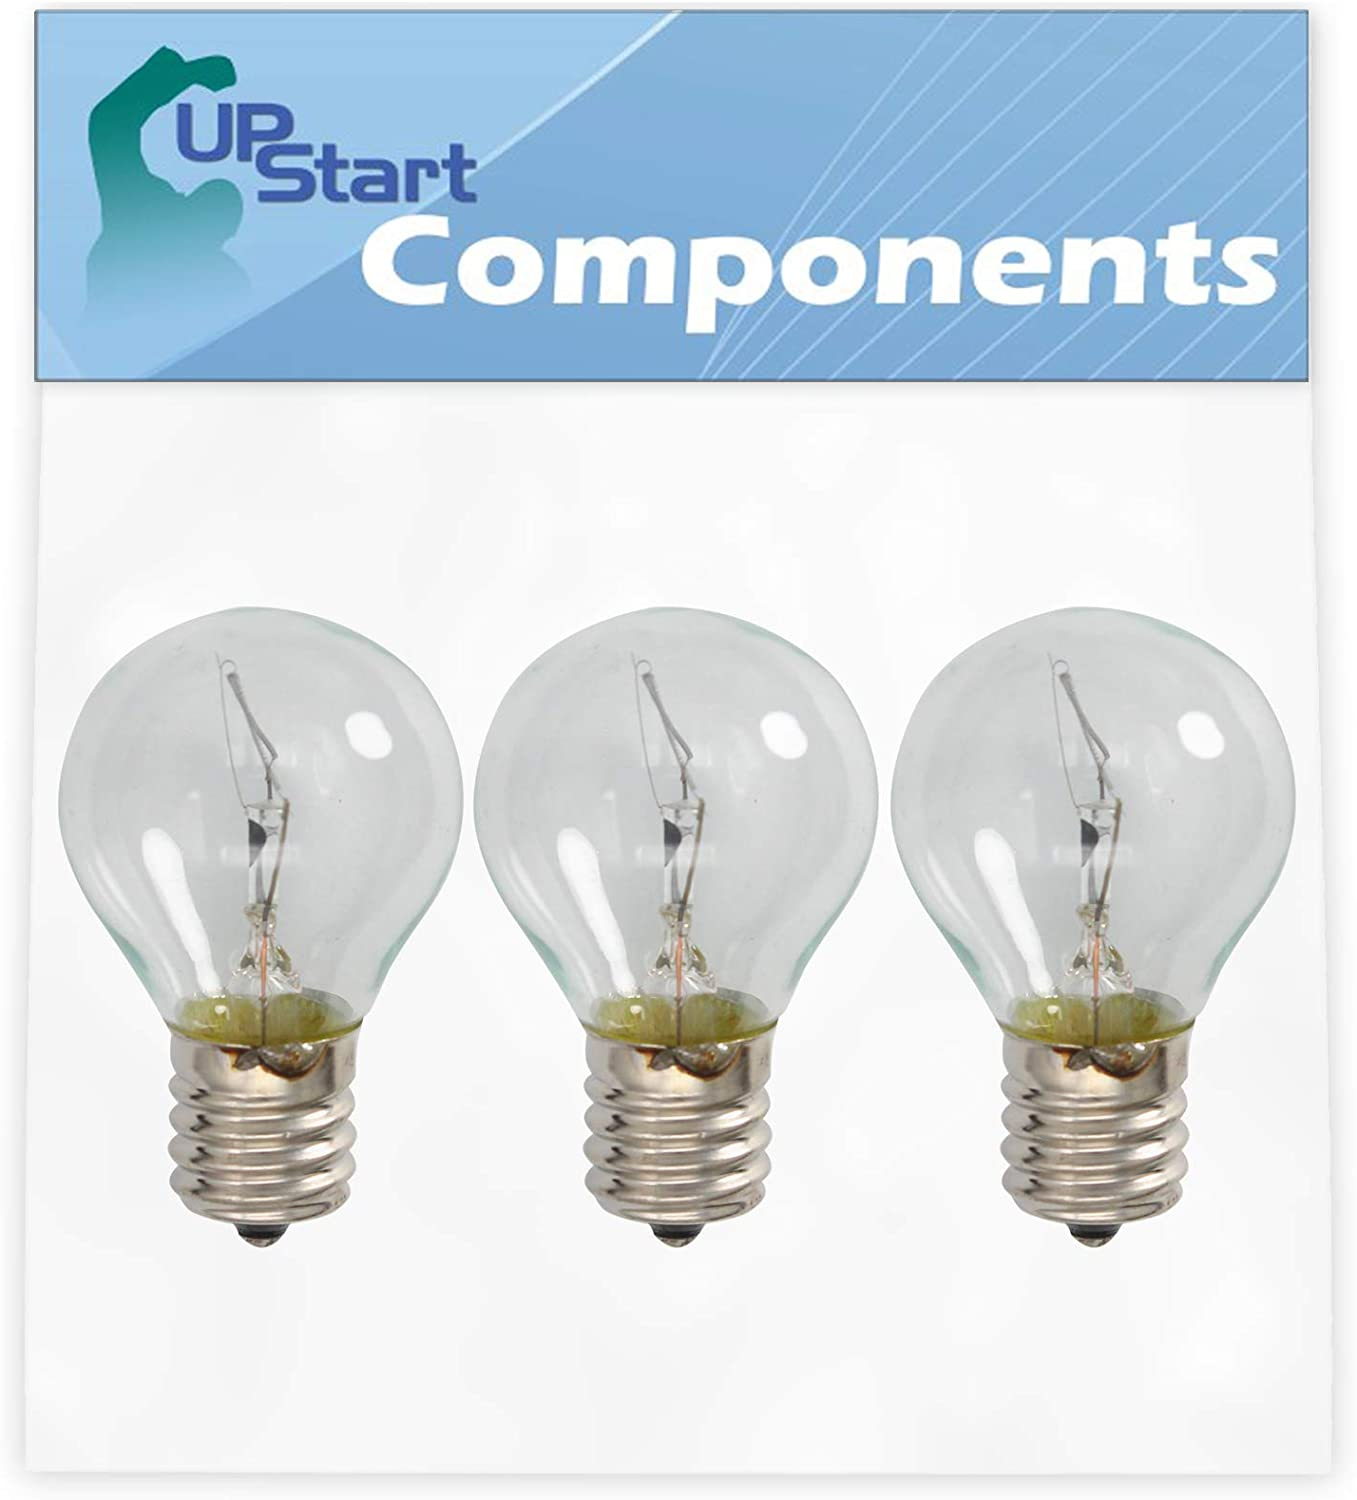 3-Pack 8206443 Light Bulb Replacement for Whirlpool & Kenmore/Sears Microwaves - Compatible with Part Number AP3886256, 1178018, AH1156014, EA1156014, PS1156014, Y0053422 Microwave Light Bulbs